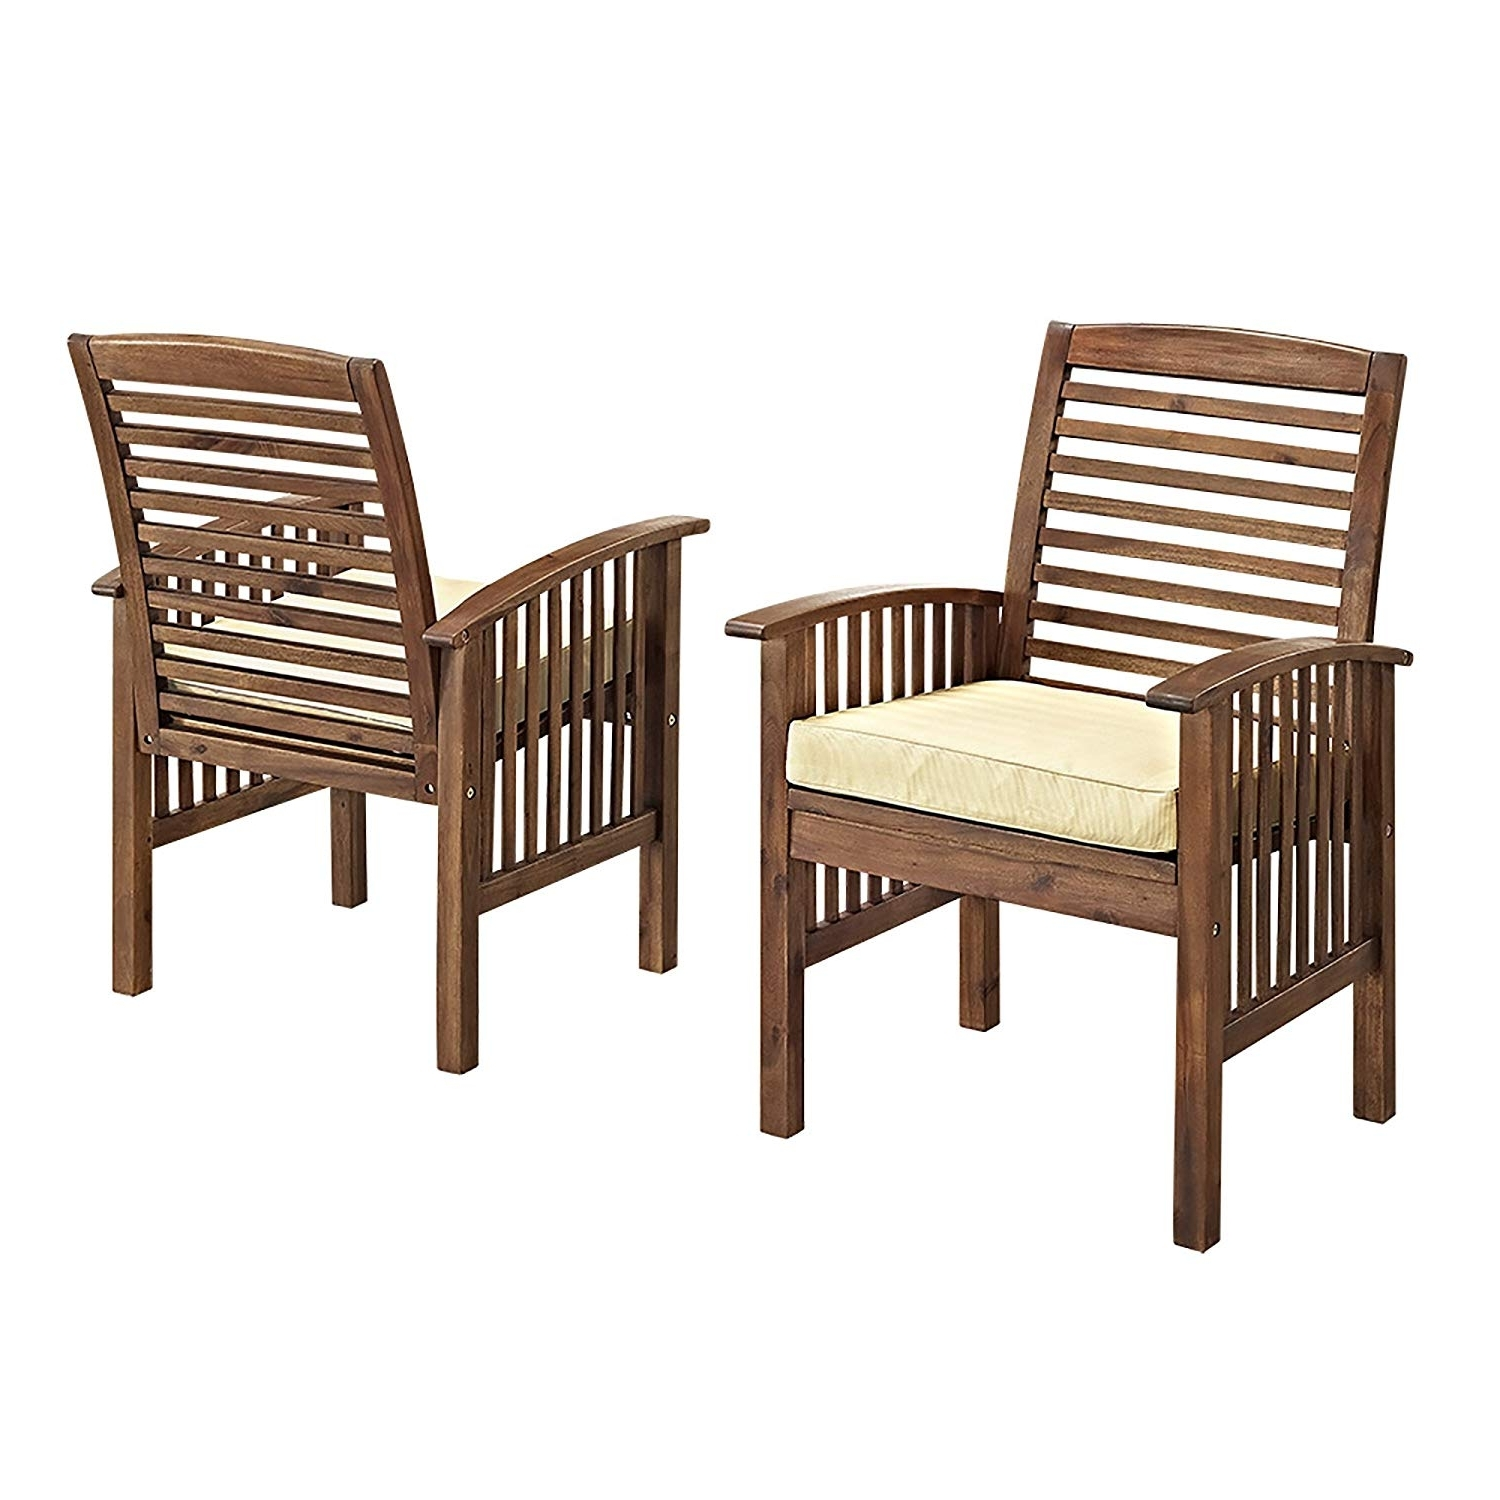 Amazon : We Furniture Solid Acacia Wood 4 Piece Patio Chat Set Regarding Latest Patio Conversation Sets With Cushions (View 11 of 15)